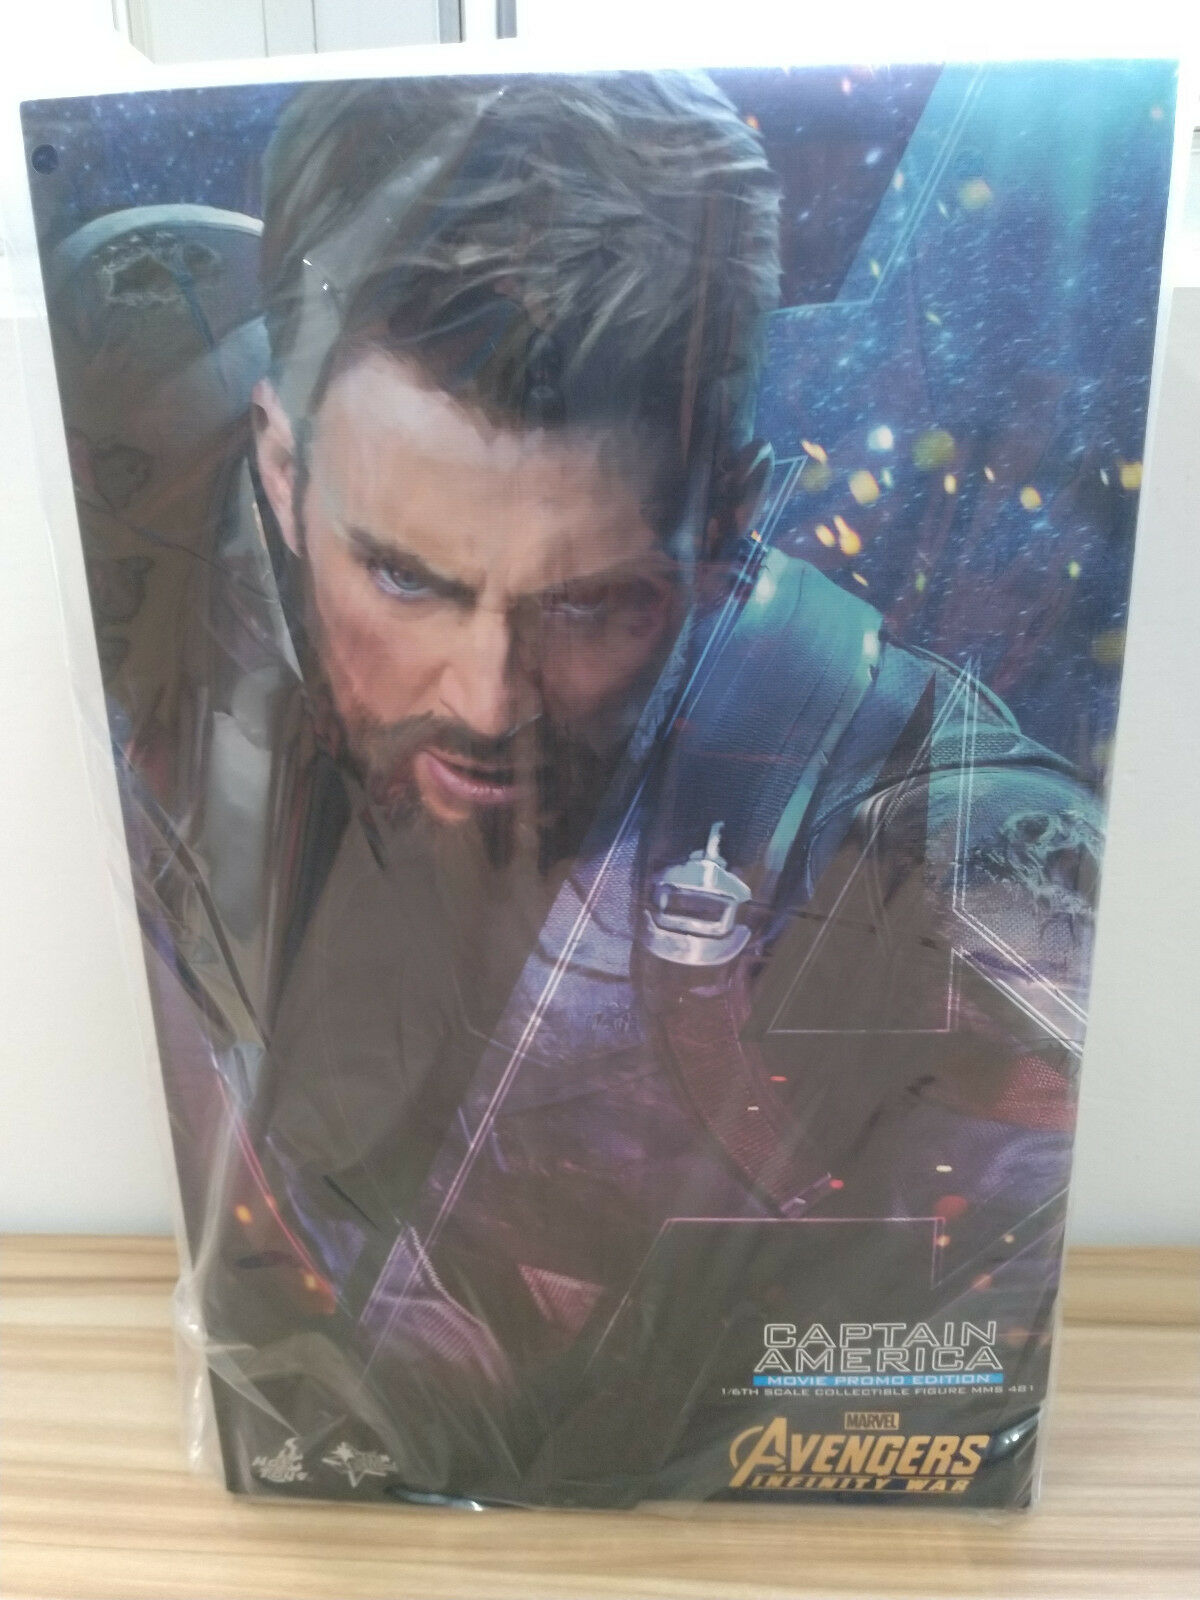 Hot Toys MMS481 Avengers Infinity War Captain America Movie Promo Edition Figure